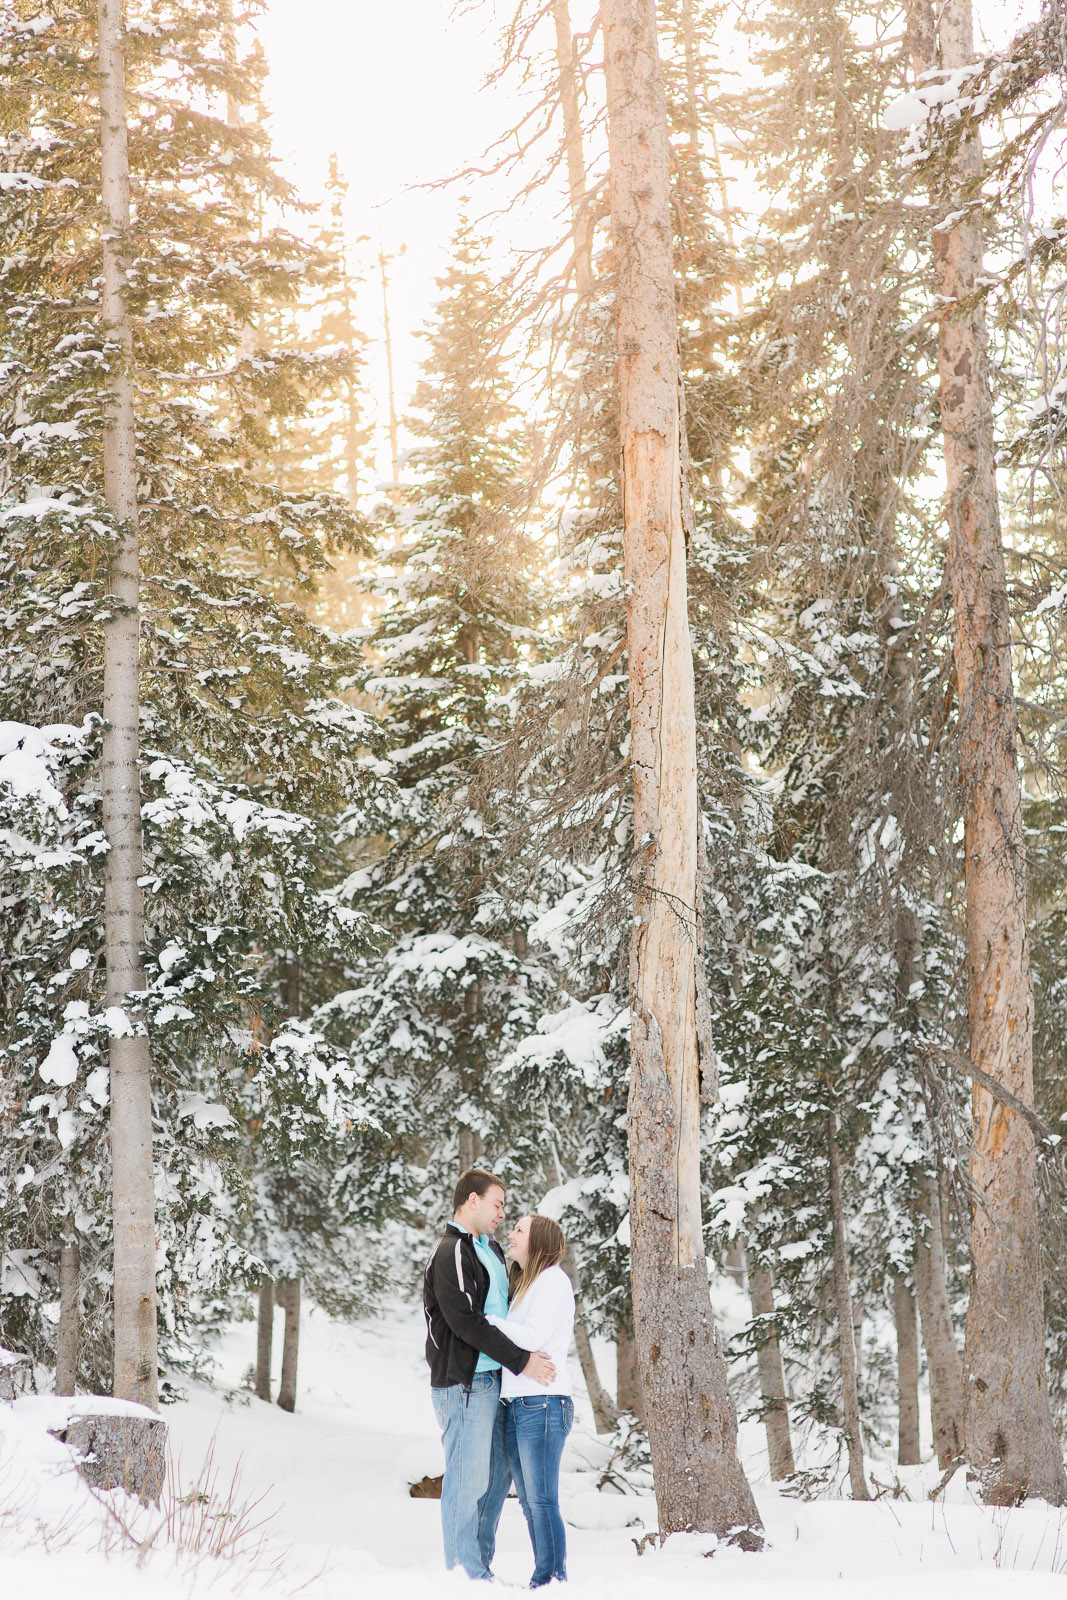 Snowy Range Mountains Wyoming Winter Engagement Photography by Laramie Wyoming Based wedding photographer